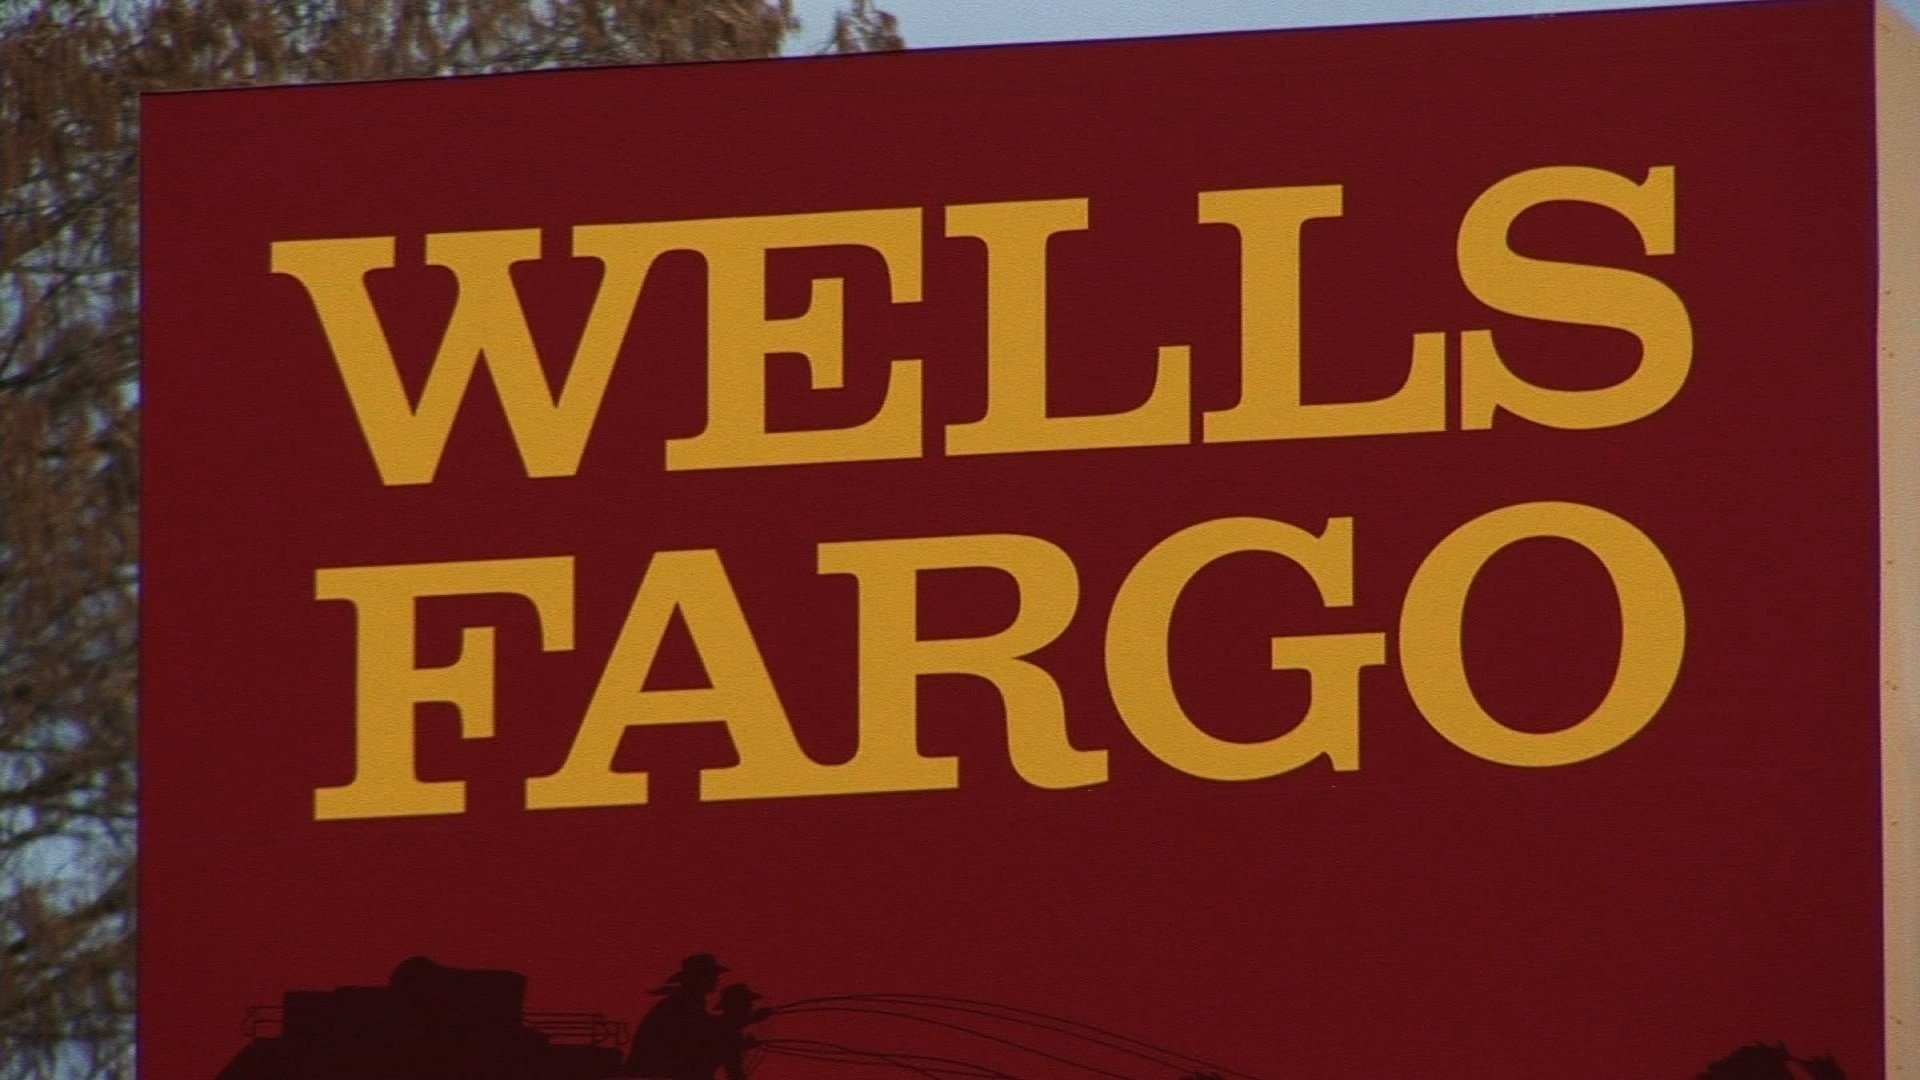 Wells Fargo CEO to take 'full responsibility' in Senate hearing - NY Times